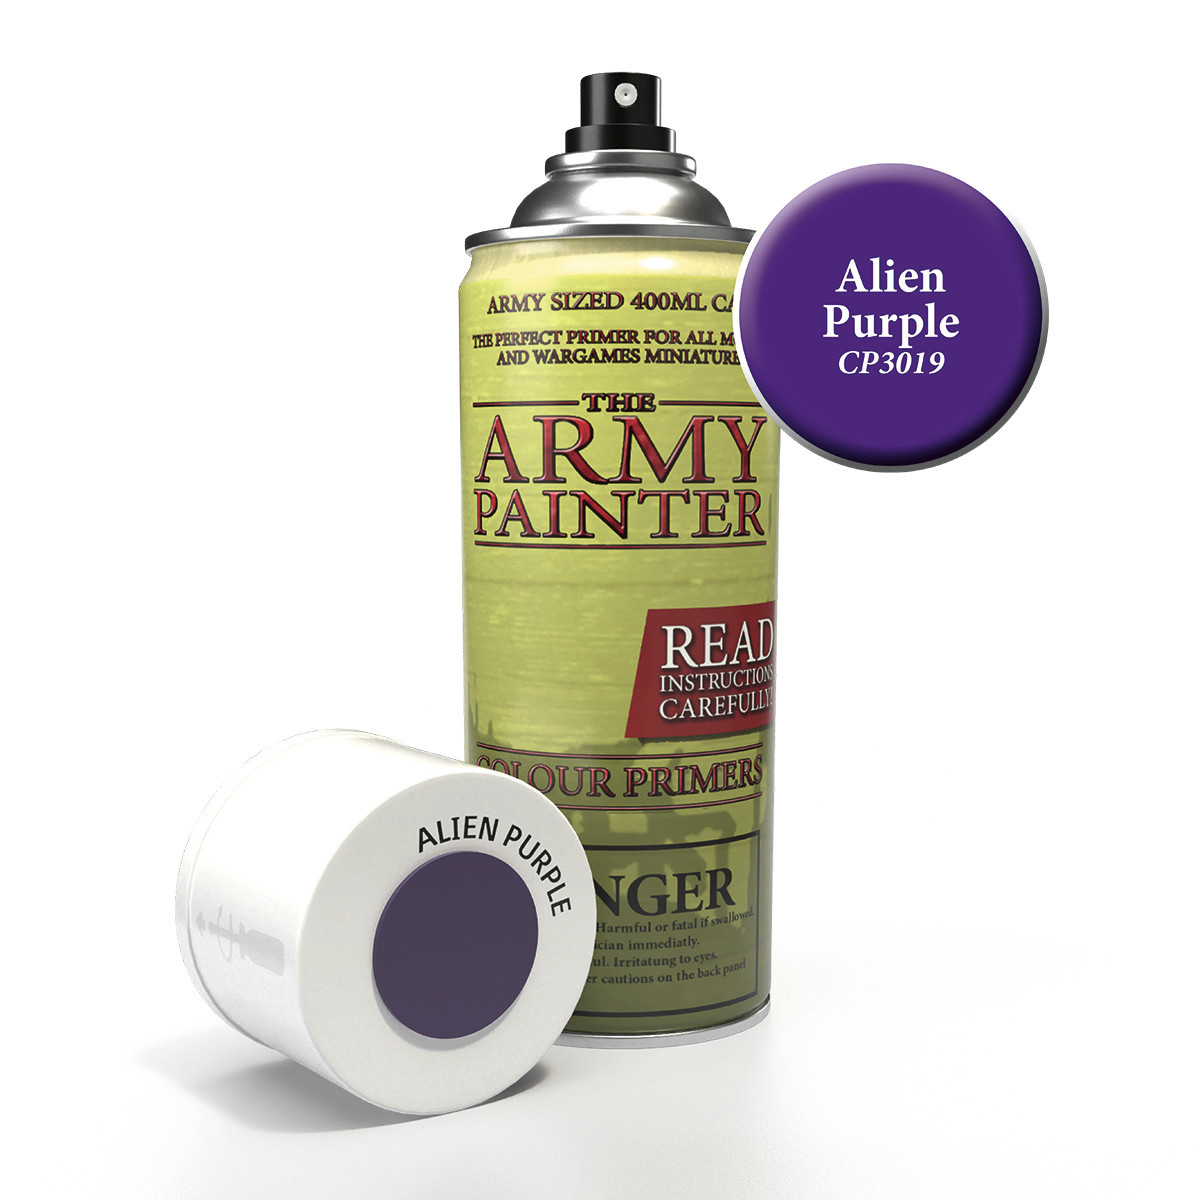 The Army Painter Primer: Colour Alien Purple